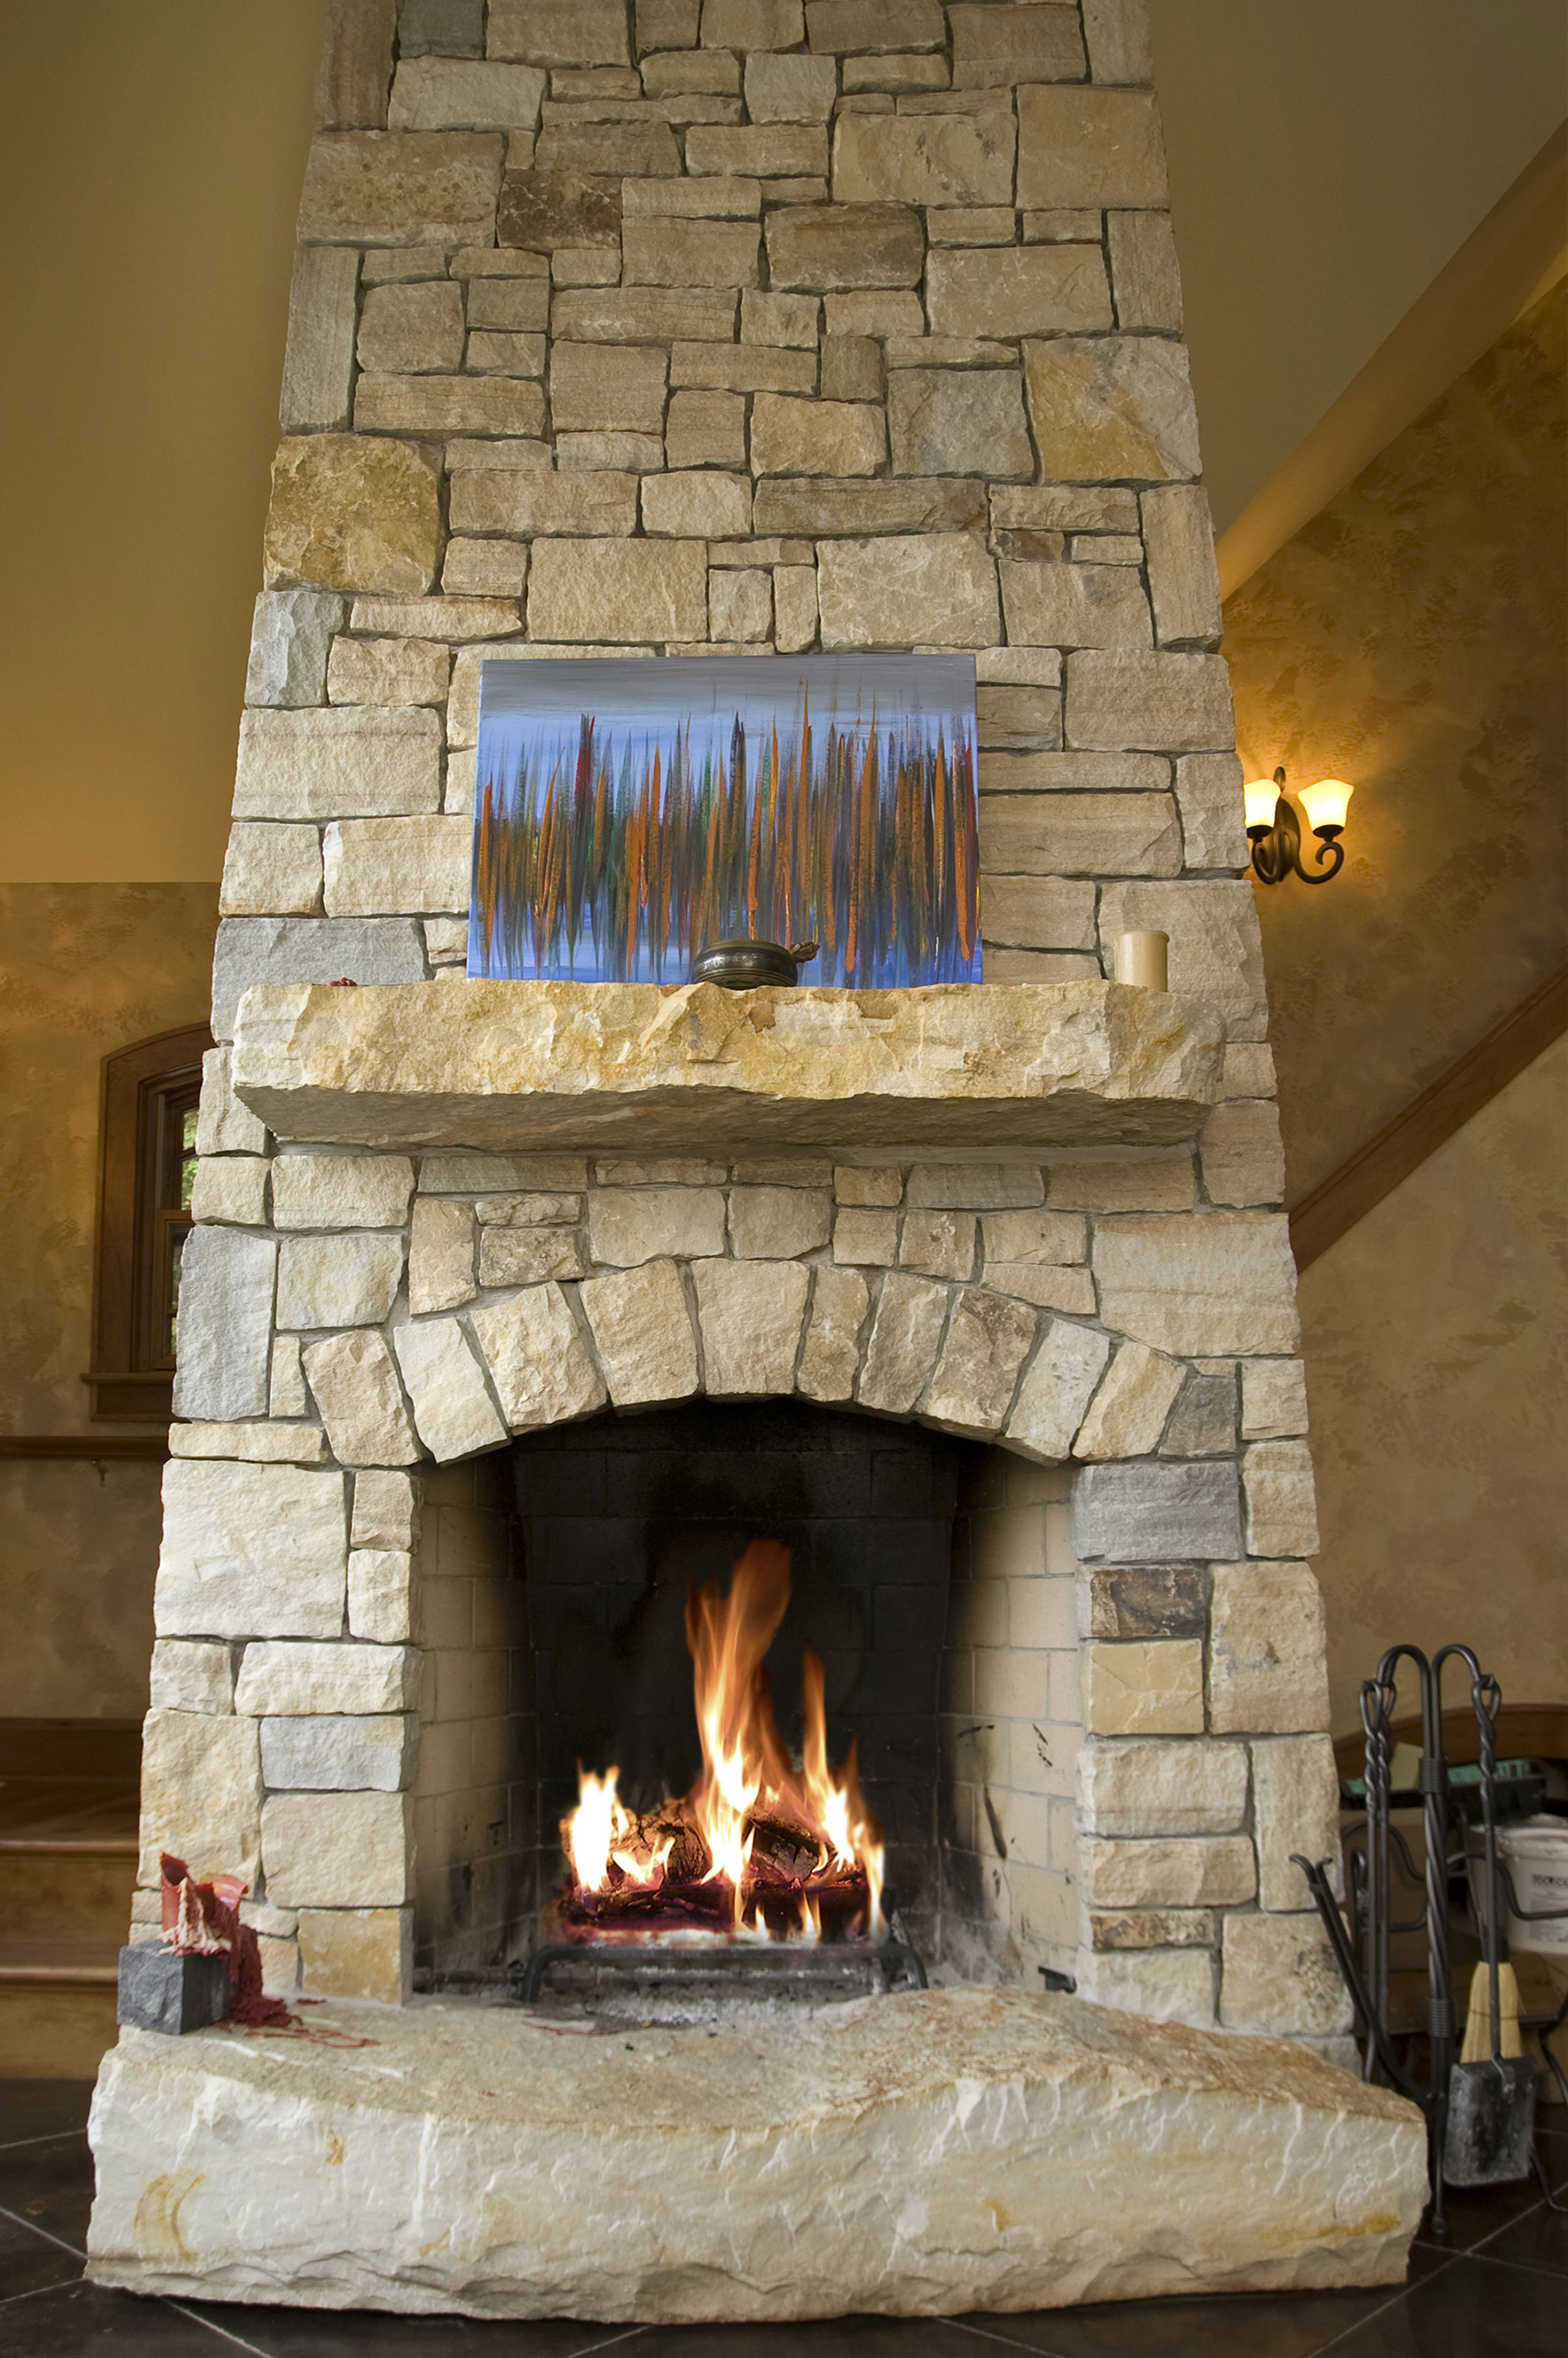 view of stone fireplace and chimney